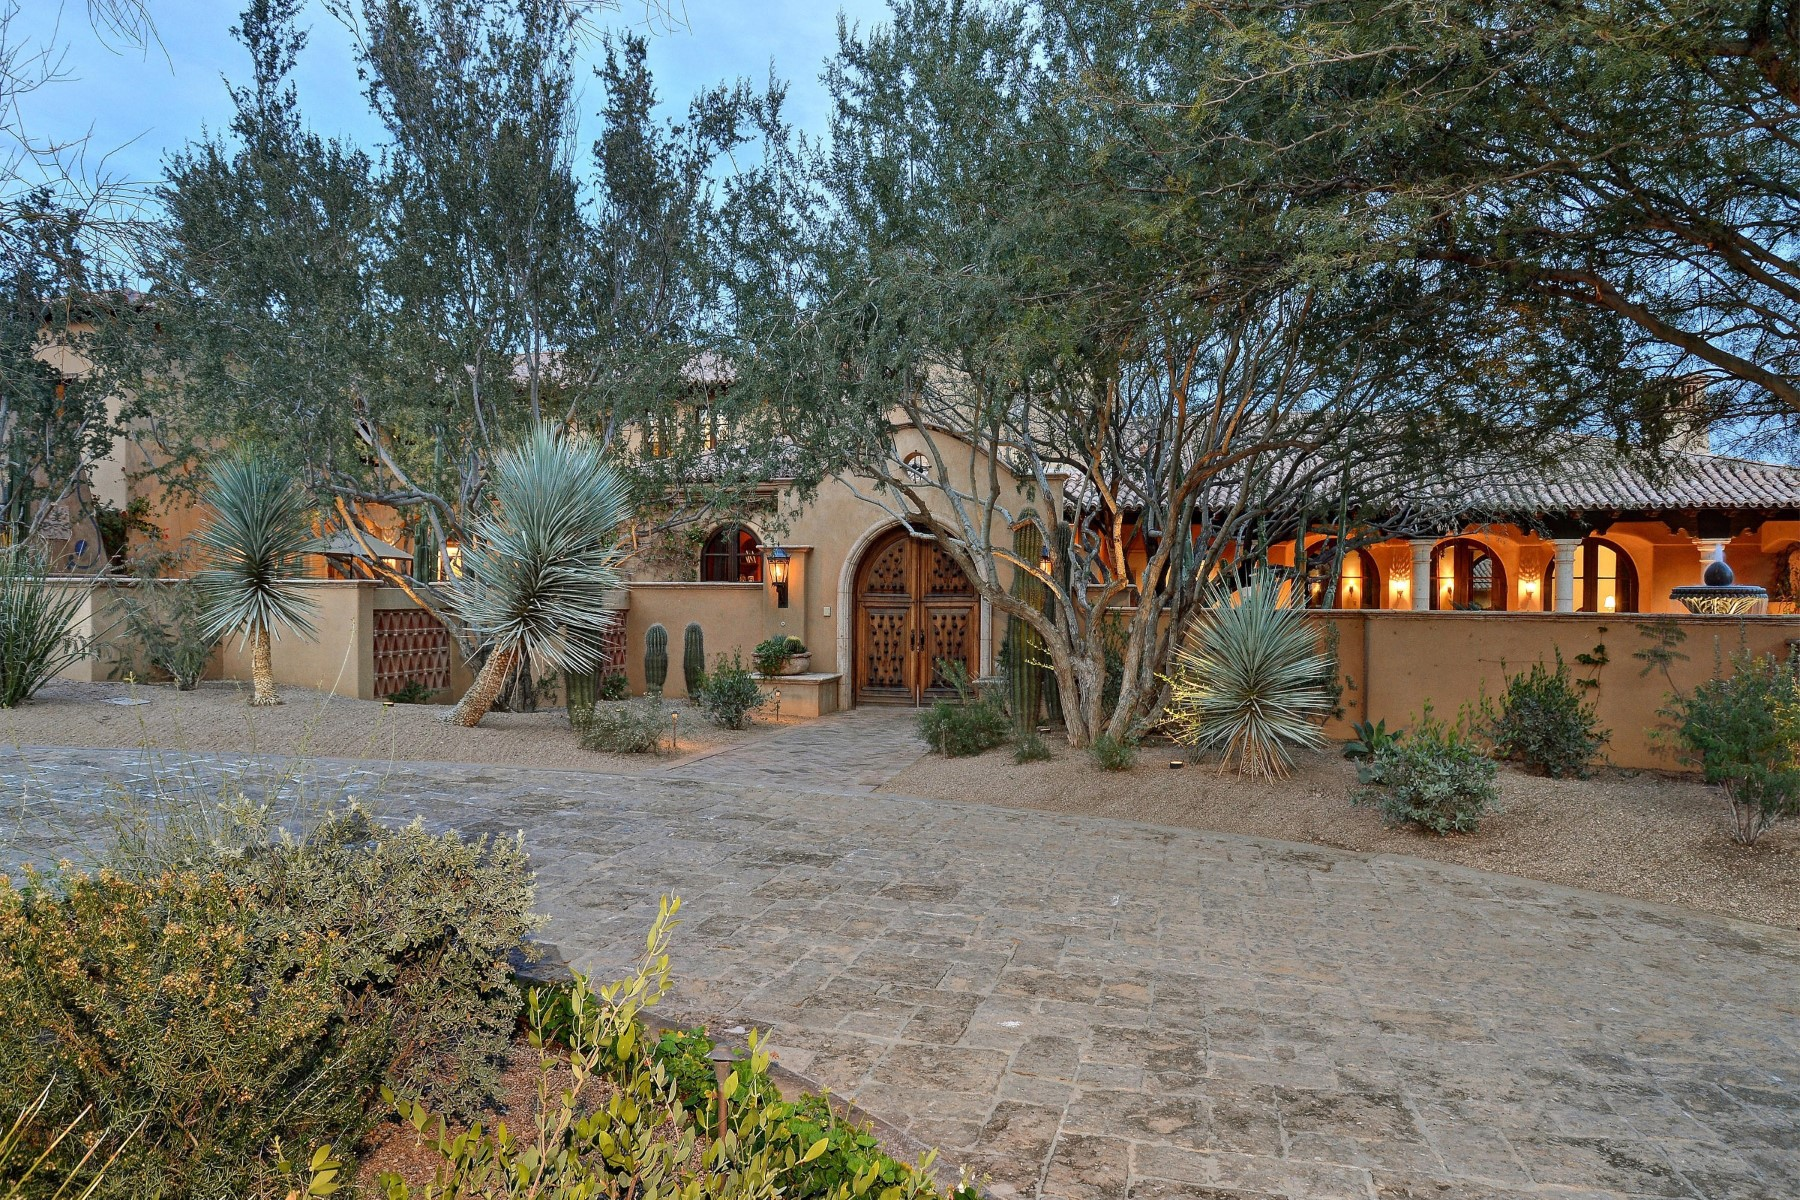 Villa per Vendita alle ore Great value at the base of Camelback Mountain with stunning views 5515 N Saguaro Rd Paradise Valley, Arizona, 85253 Stati Uniti